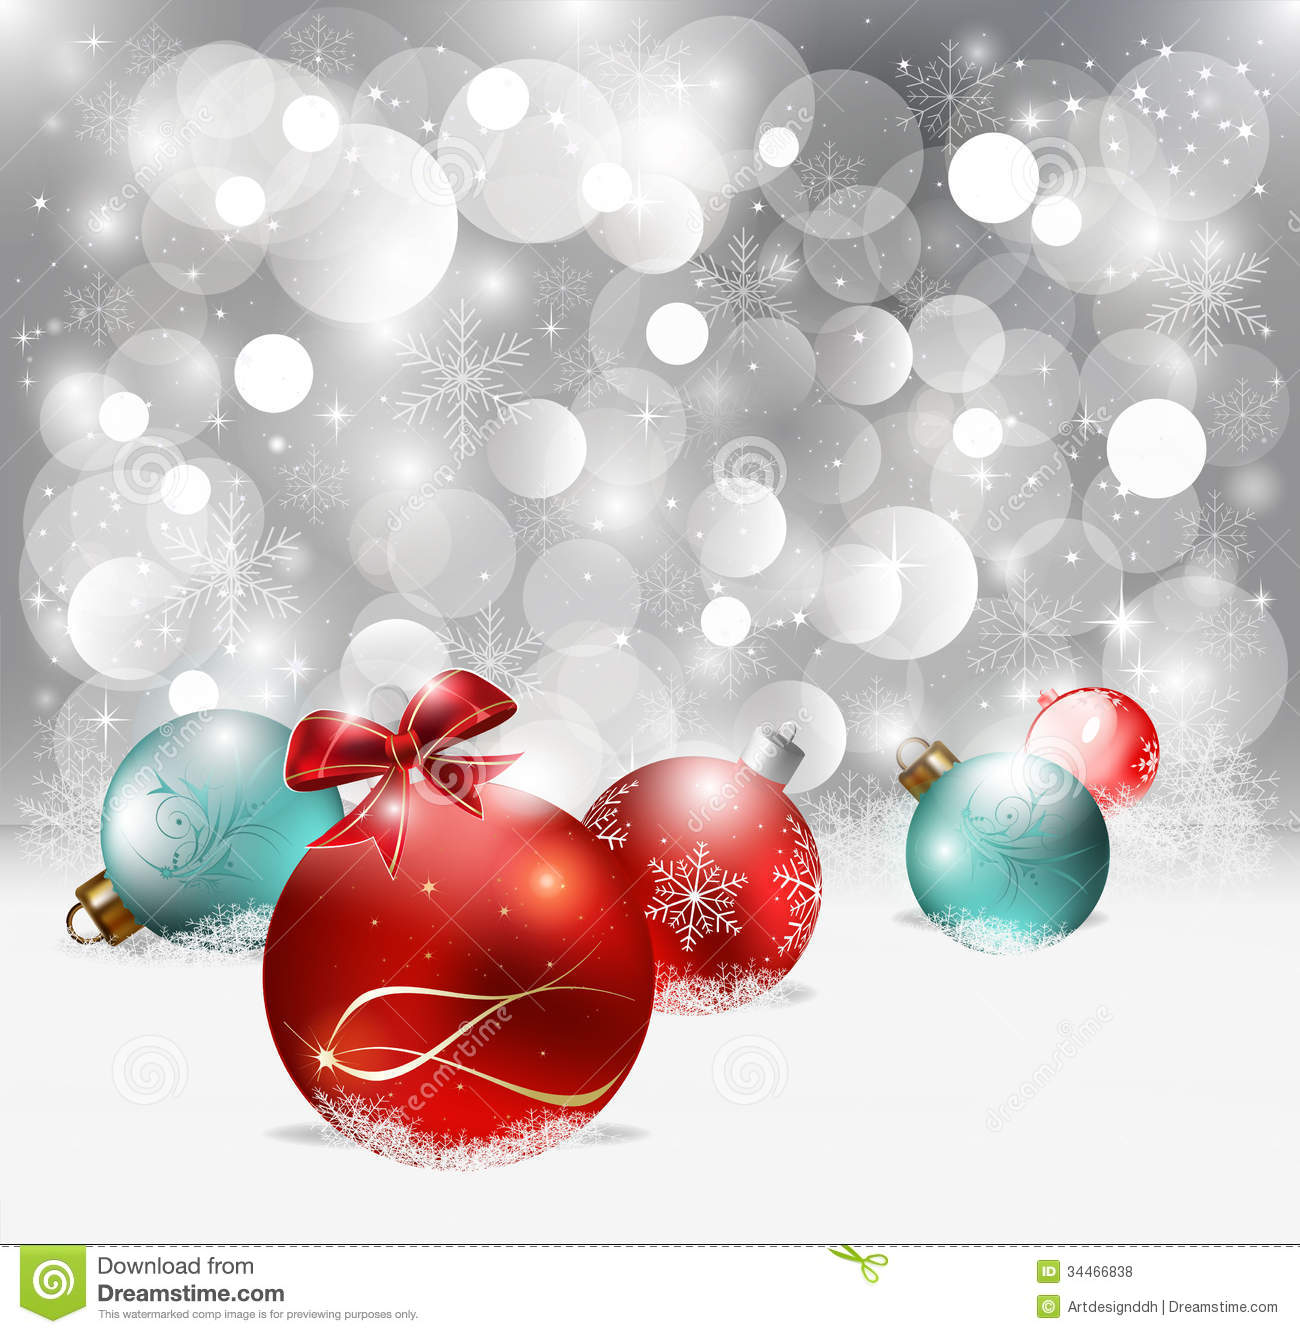 Free Christmas Clipart Backgrounds & Christmas Backgrounds Clip.